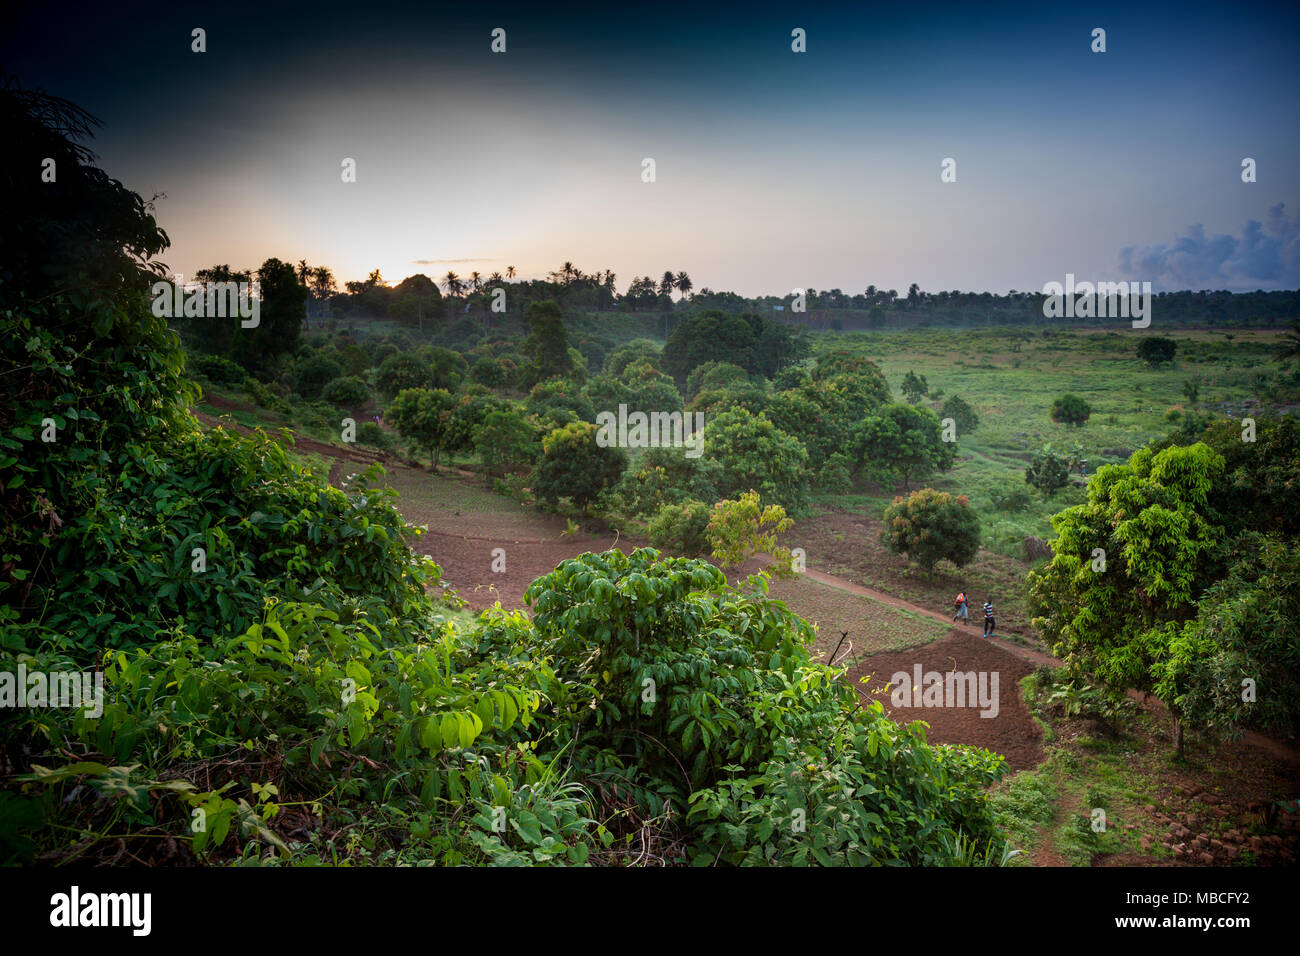 YONGORO, SIERRA LEONE - June 0, 2013: West Africa, two unknown people walking in the forest near the town of Yongoro - Stock Image